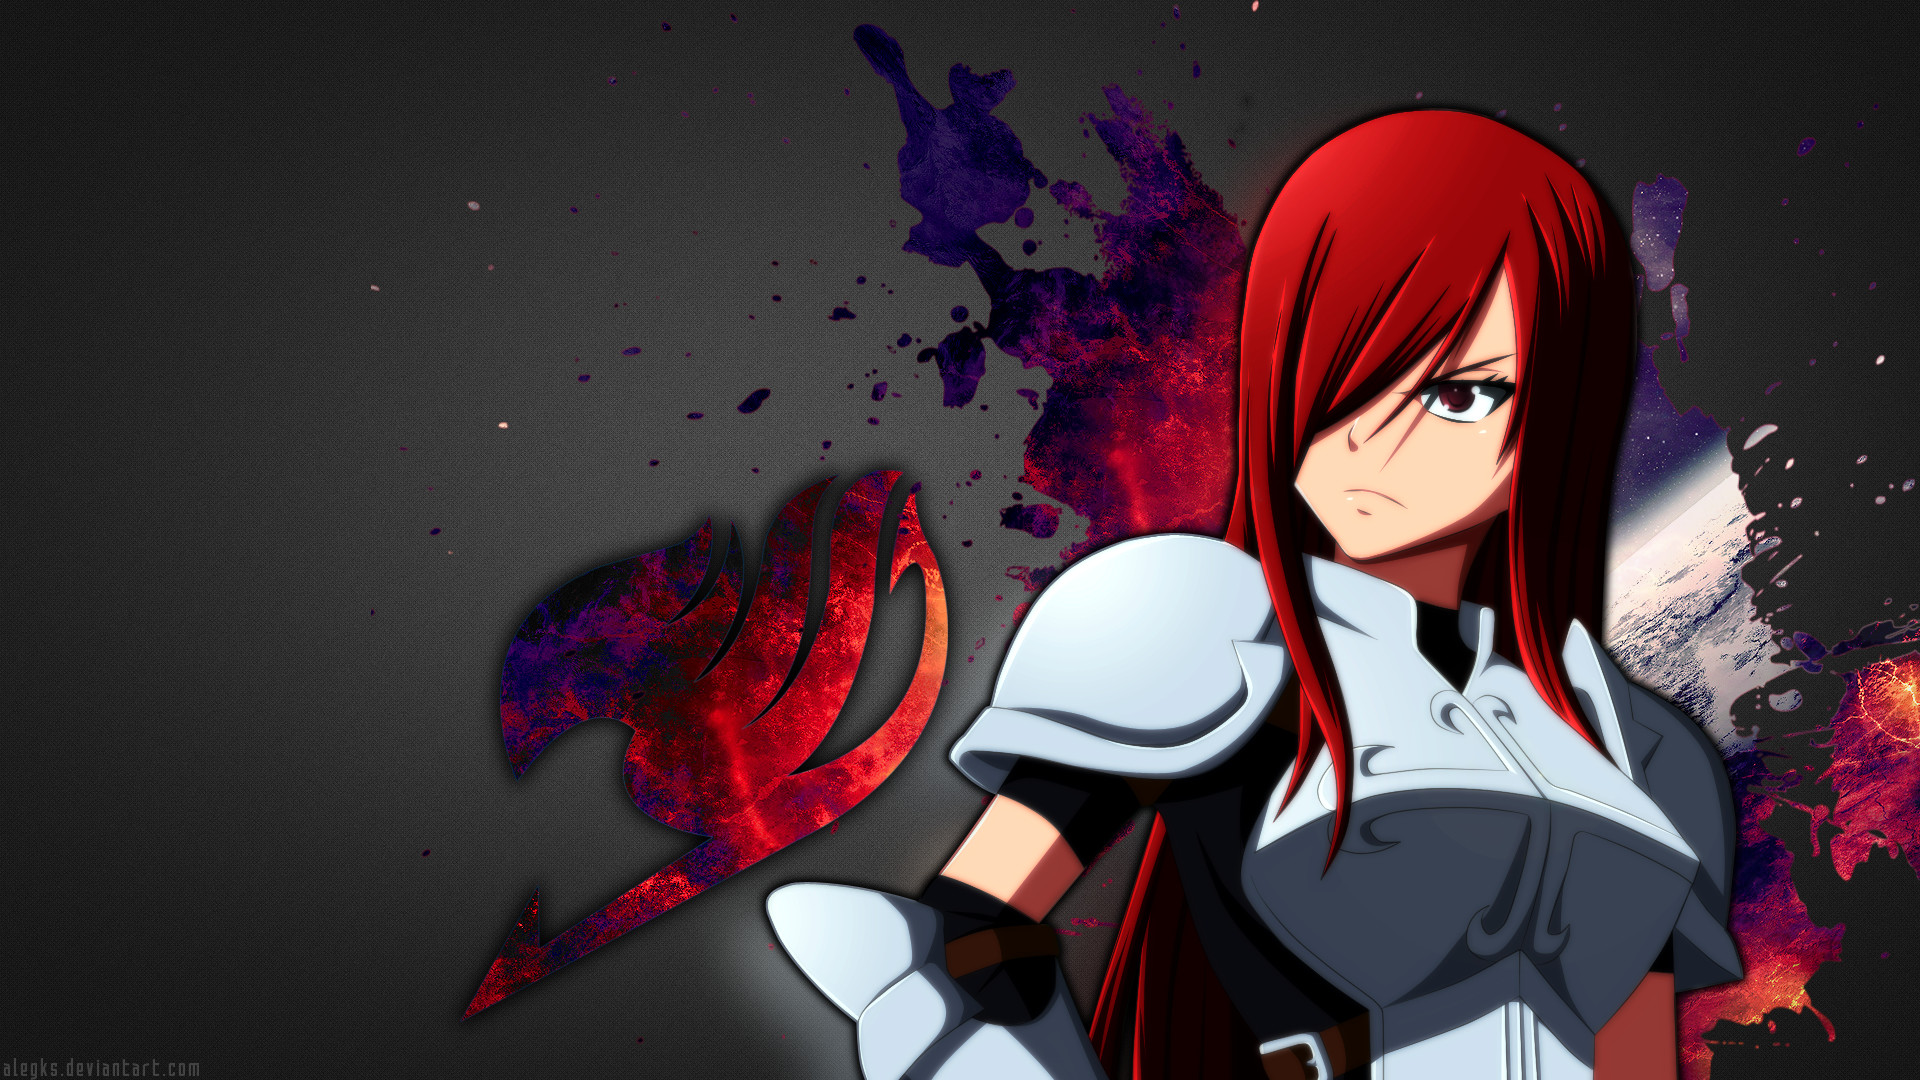 1920x1080 ... Erza Scarlet [Fairy Tail Wallpaper] by alegks